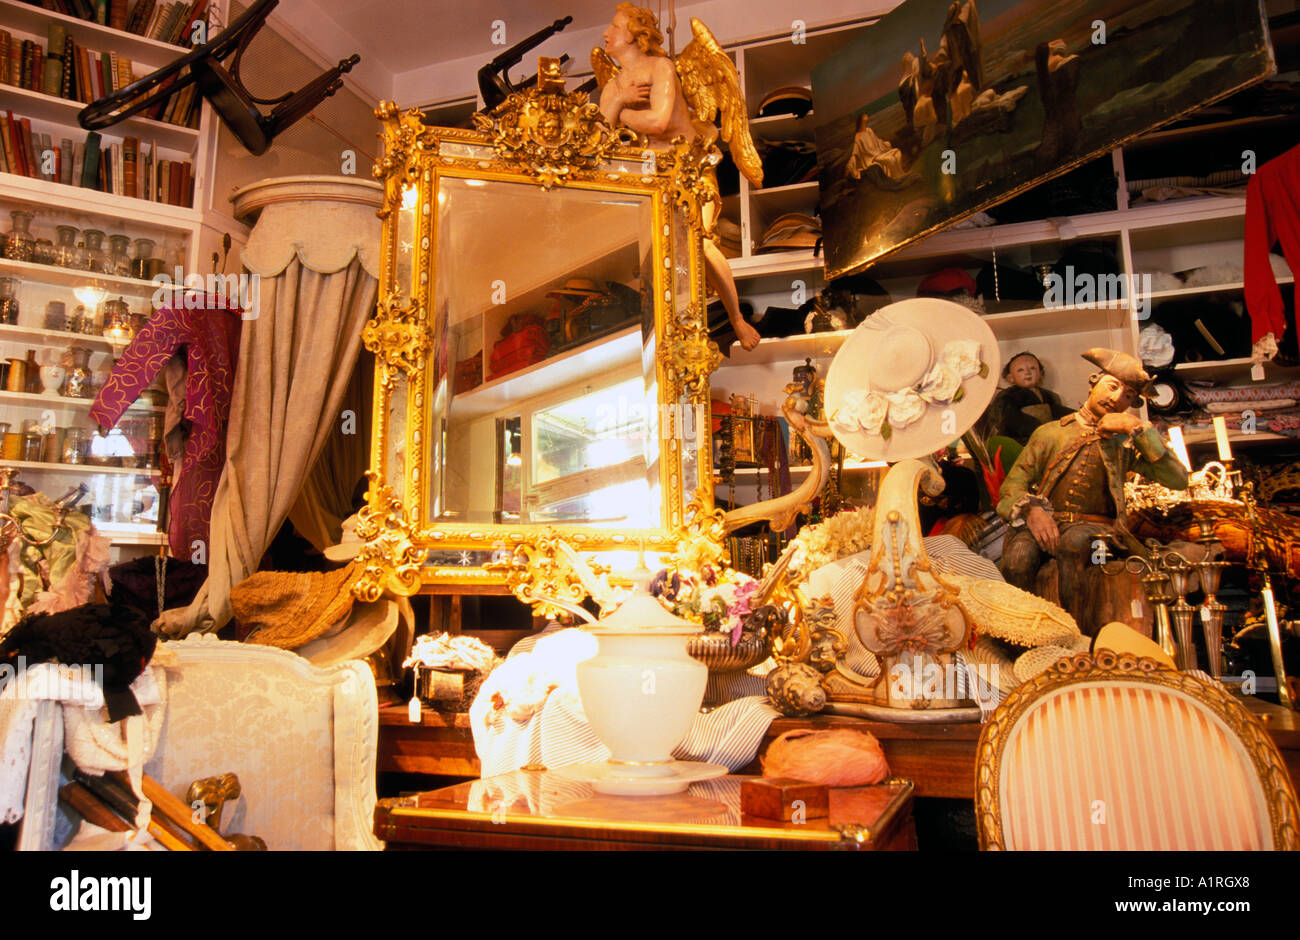 antiques at the antique shop muggenthaler glockenbachviertel munich stock photo royalty free. Black Bedroom Furniture Sets. Home Design Ideas